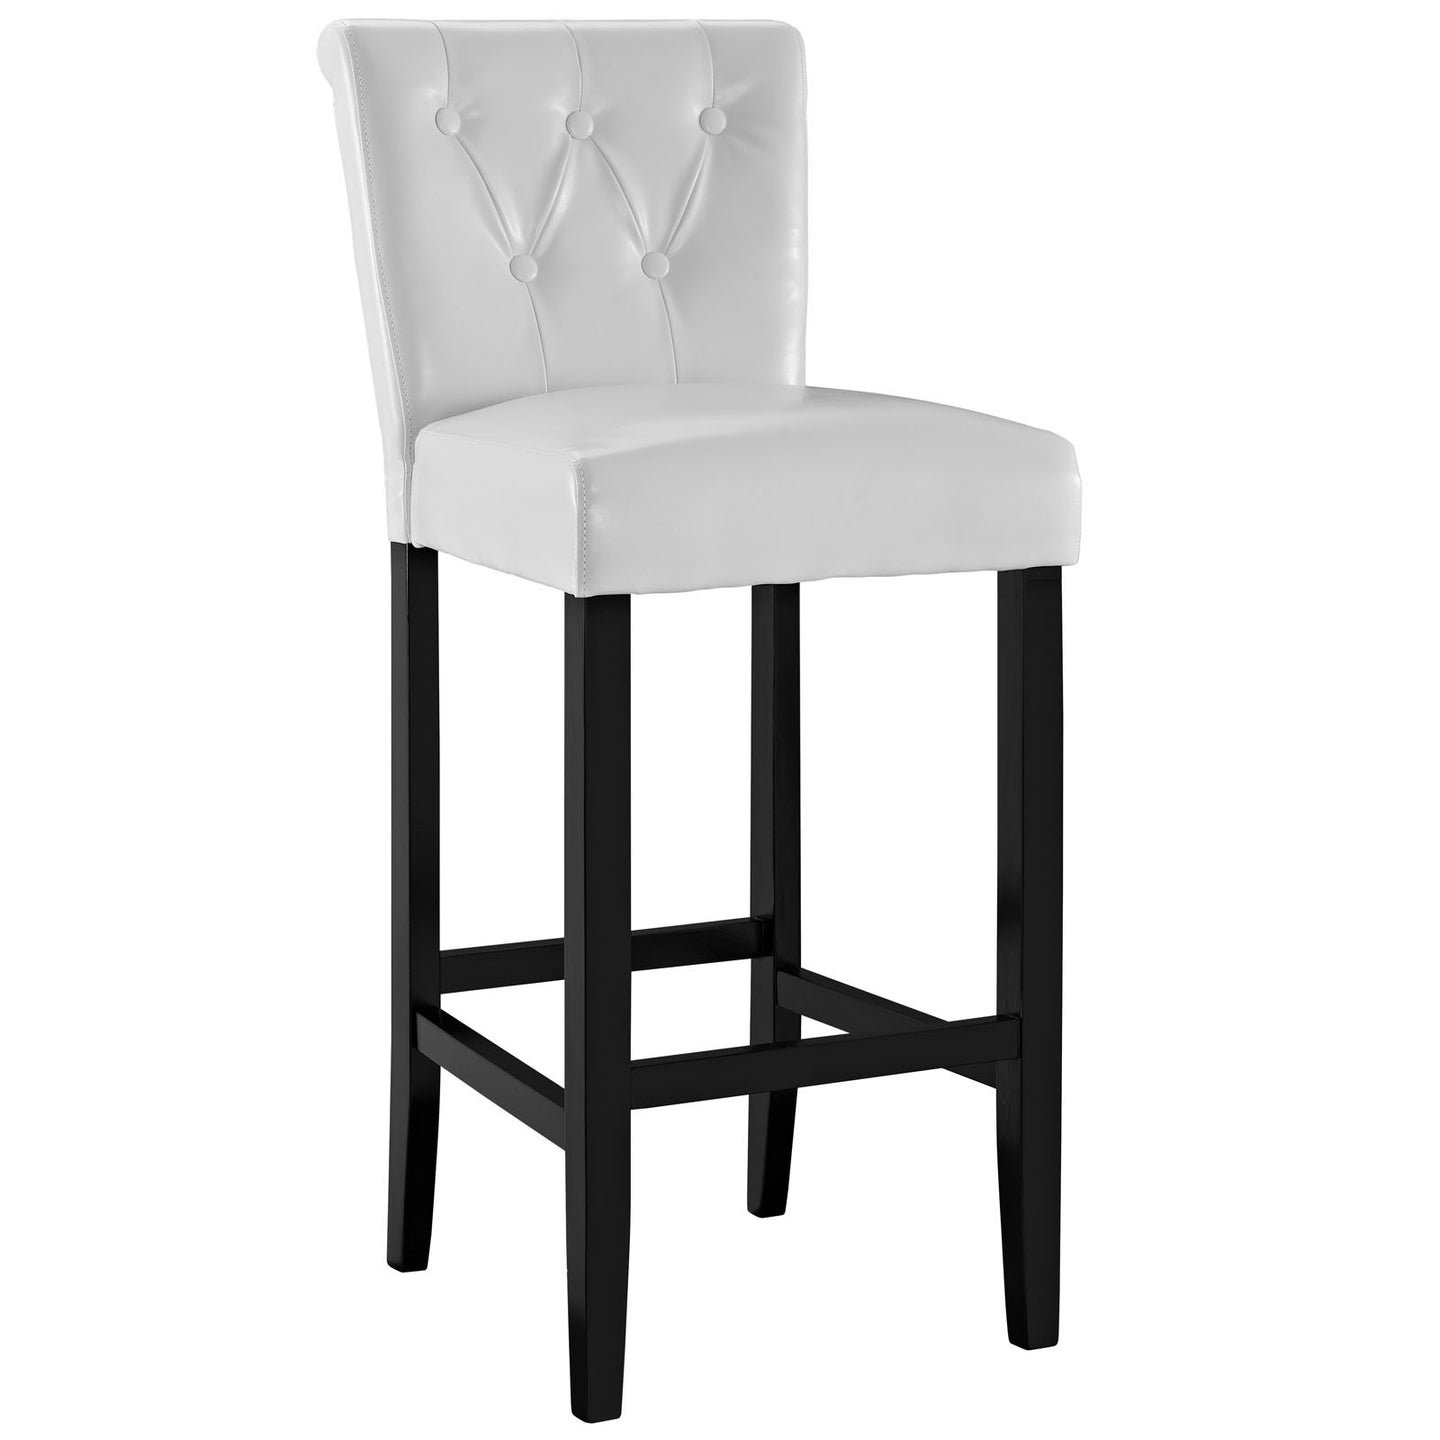 Modway Furniture Tender Modern Bar Stool EEI-1415-Minimal & Modern